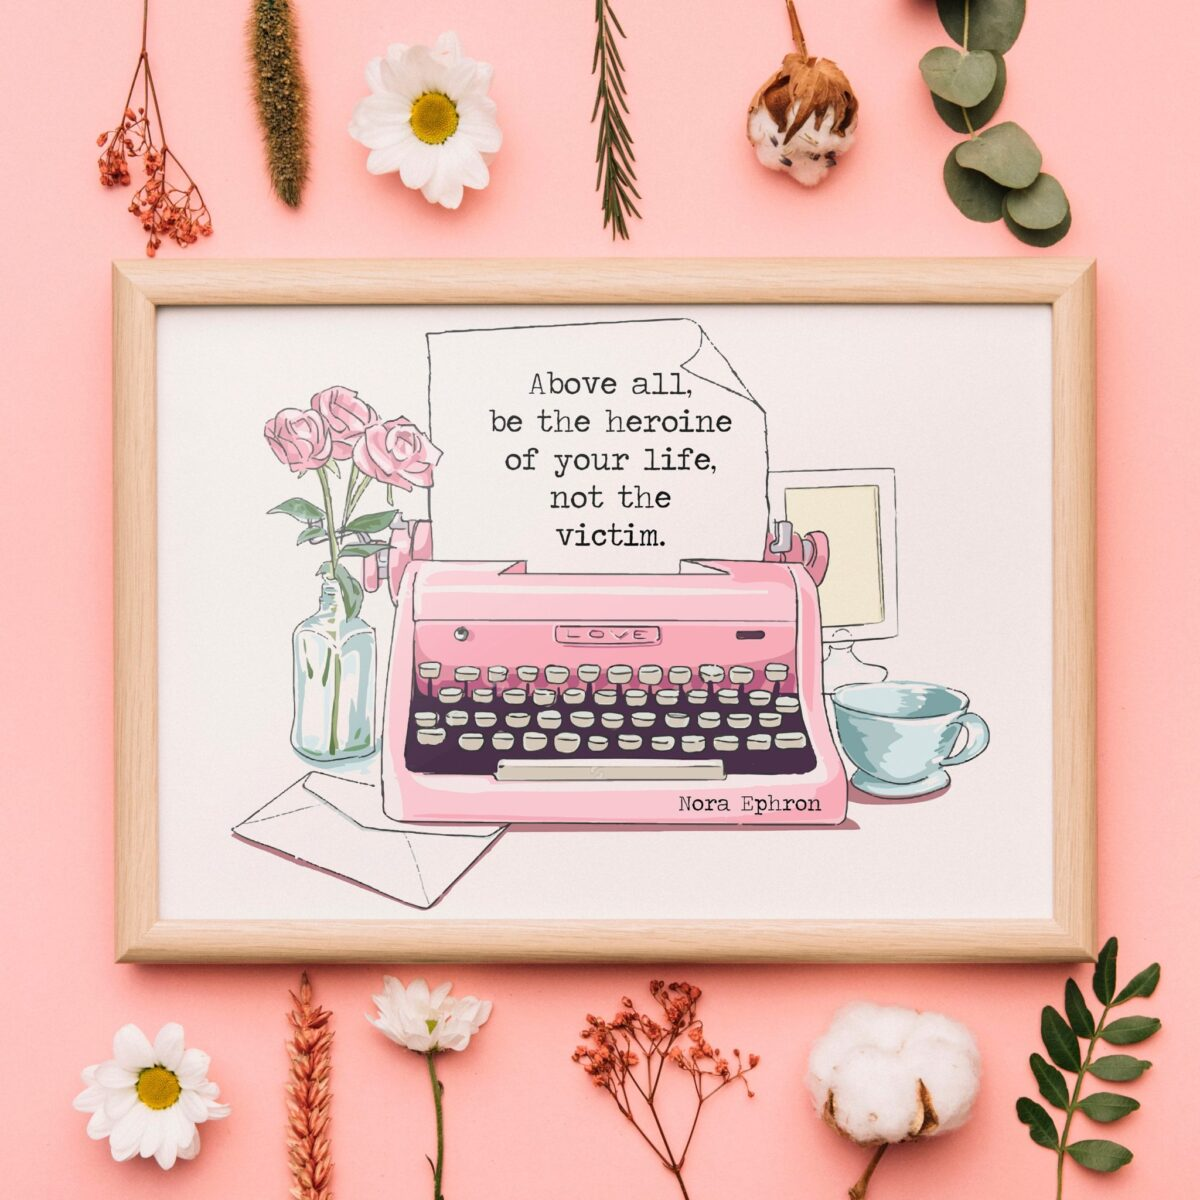 Feminist Art Print with the quote Above all, be the heroine of your life, not the victim. Pastel feminine illustration featuring flowers, a pink typewriter and a teacup.